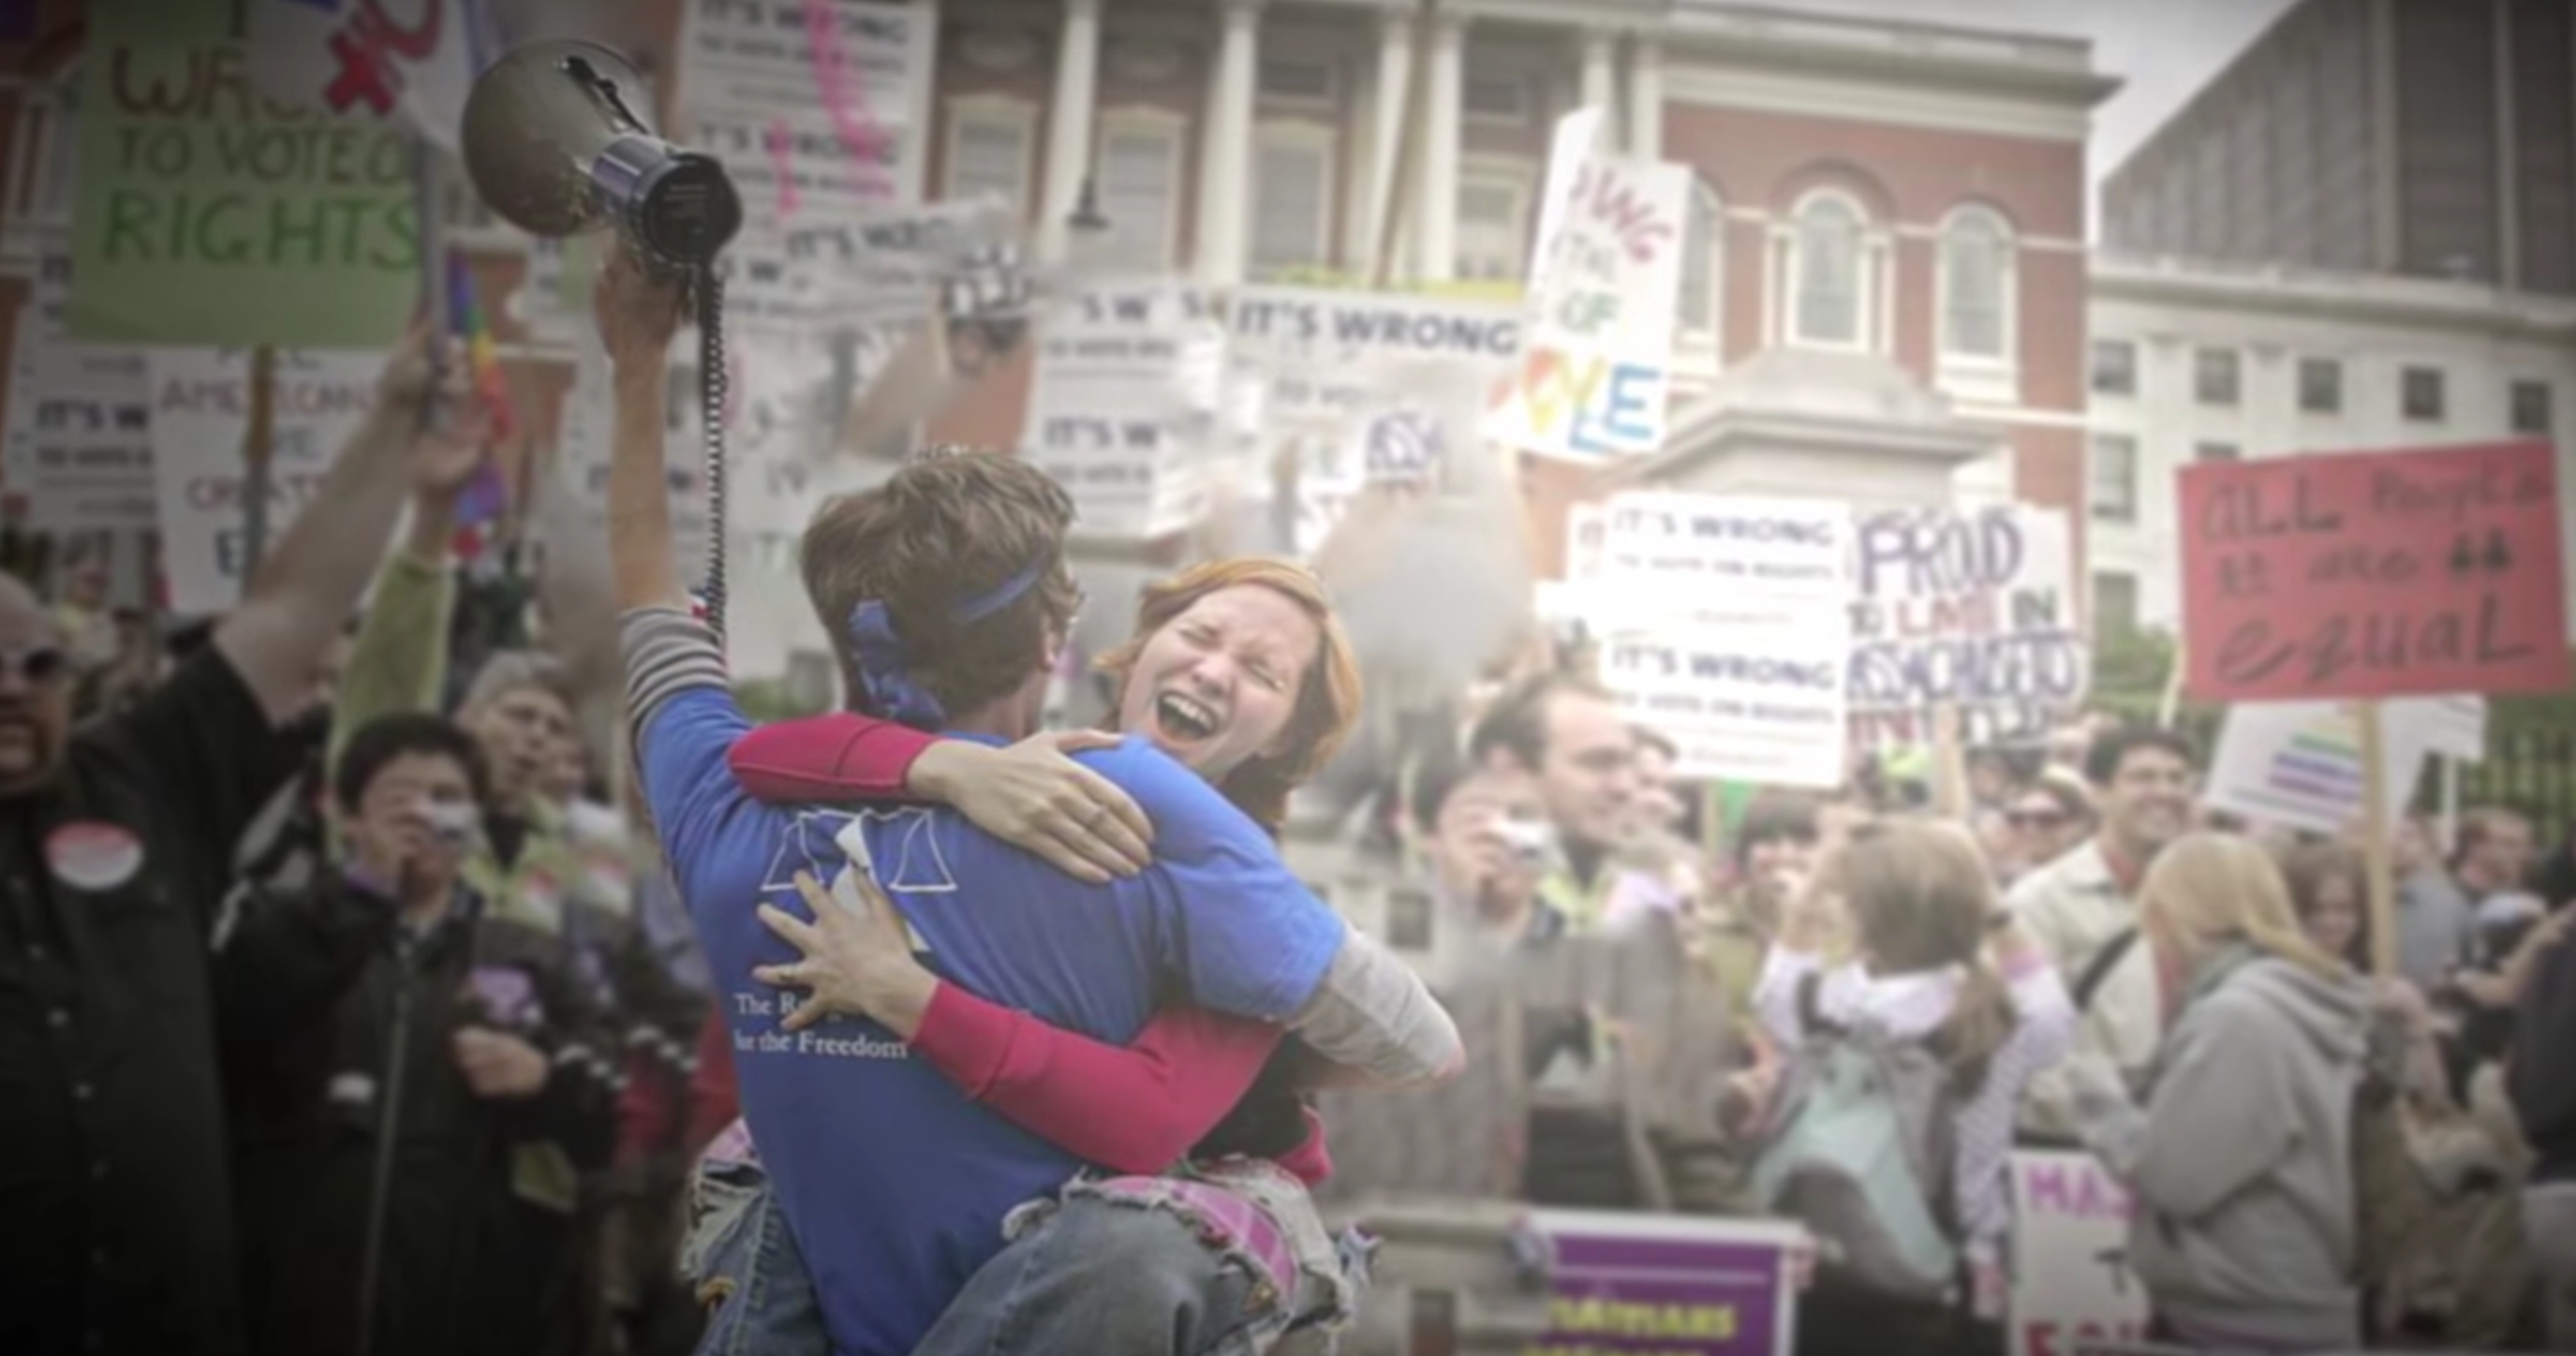 Supporters celebrate victory for the freedom to marry in Massachusetts.